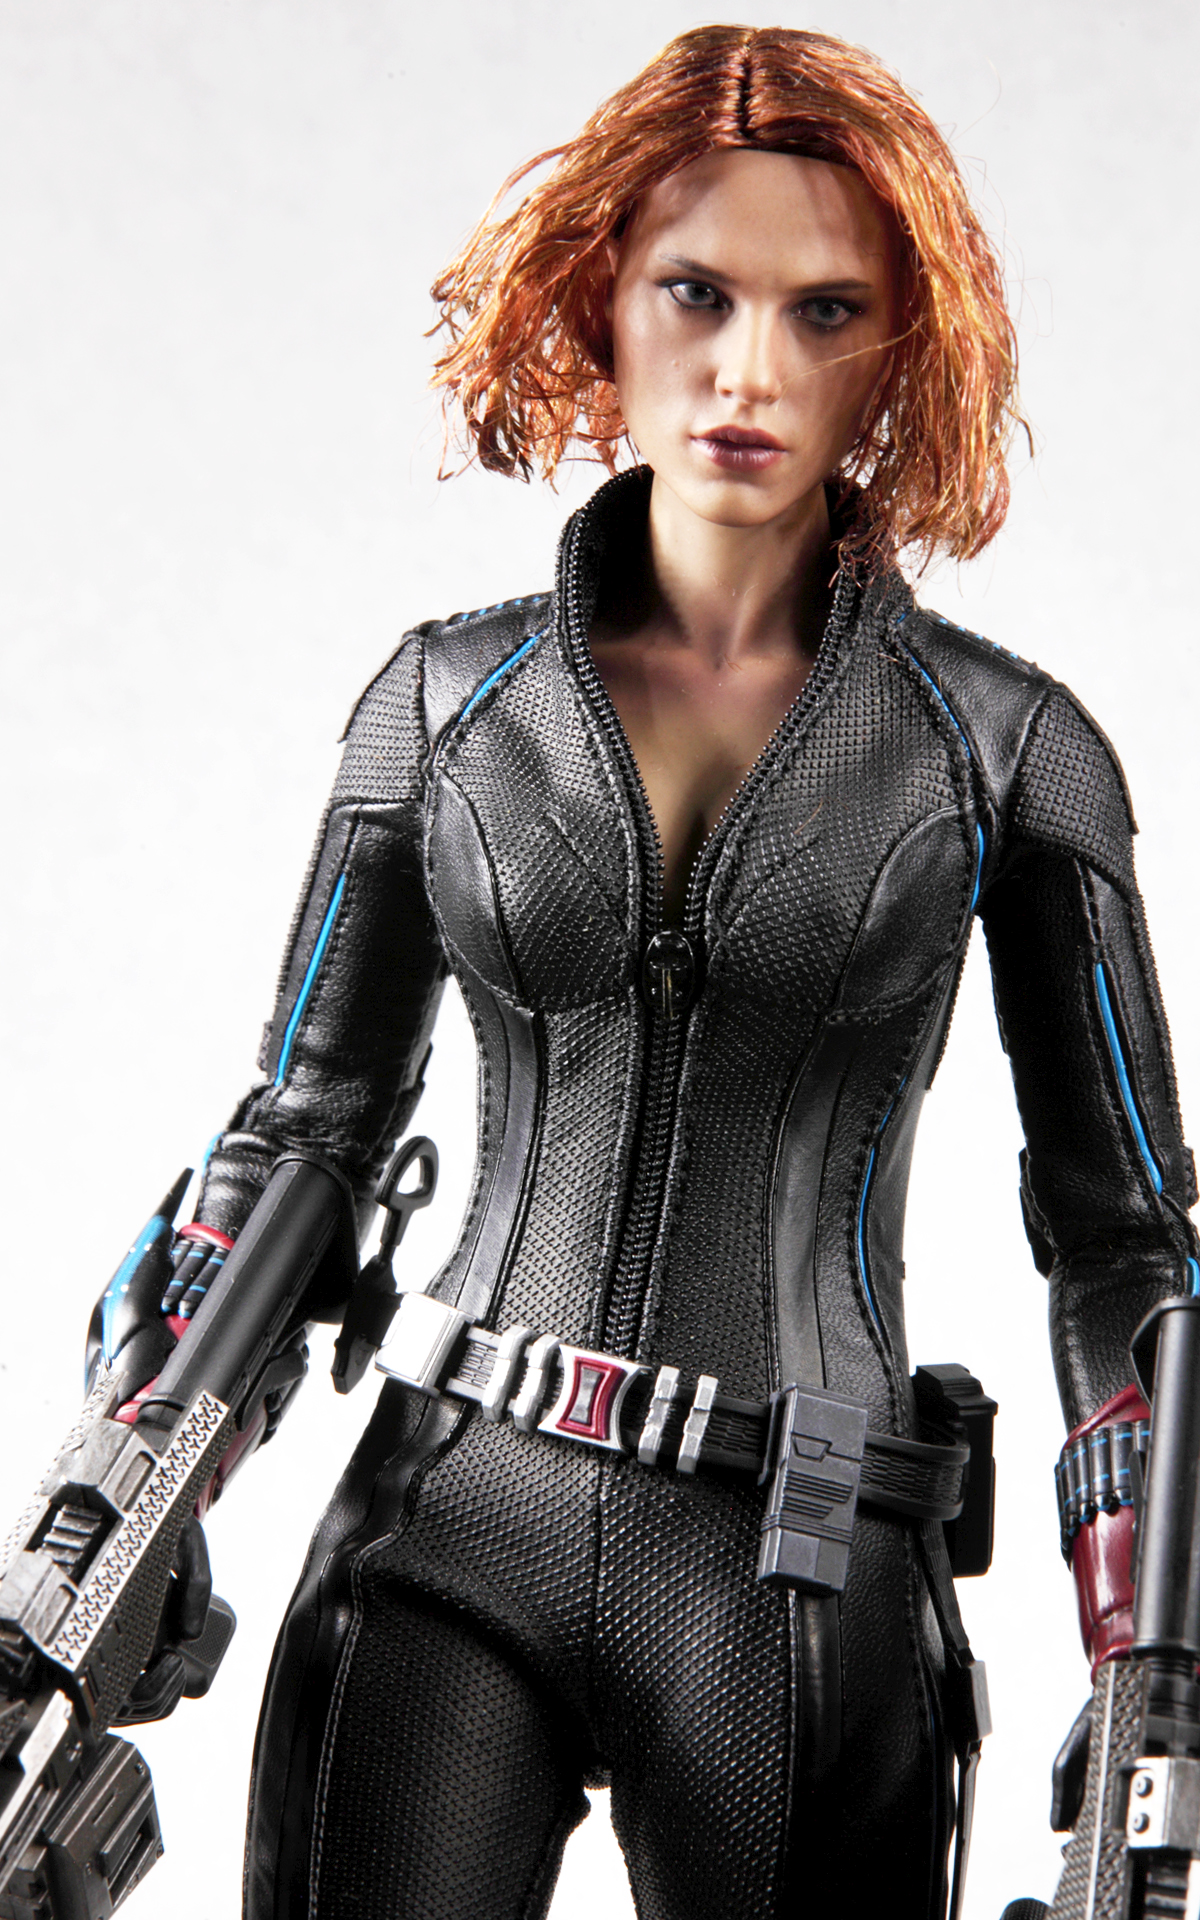 hottoys-avengers-age-of-ultron-black-widow-picture06